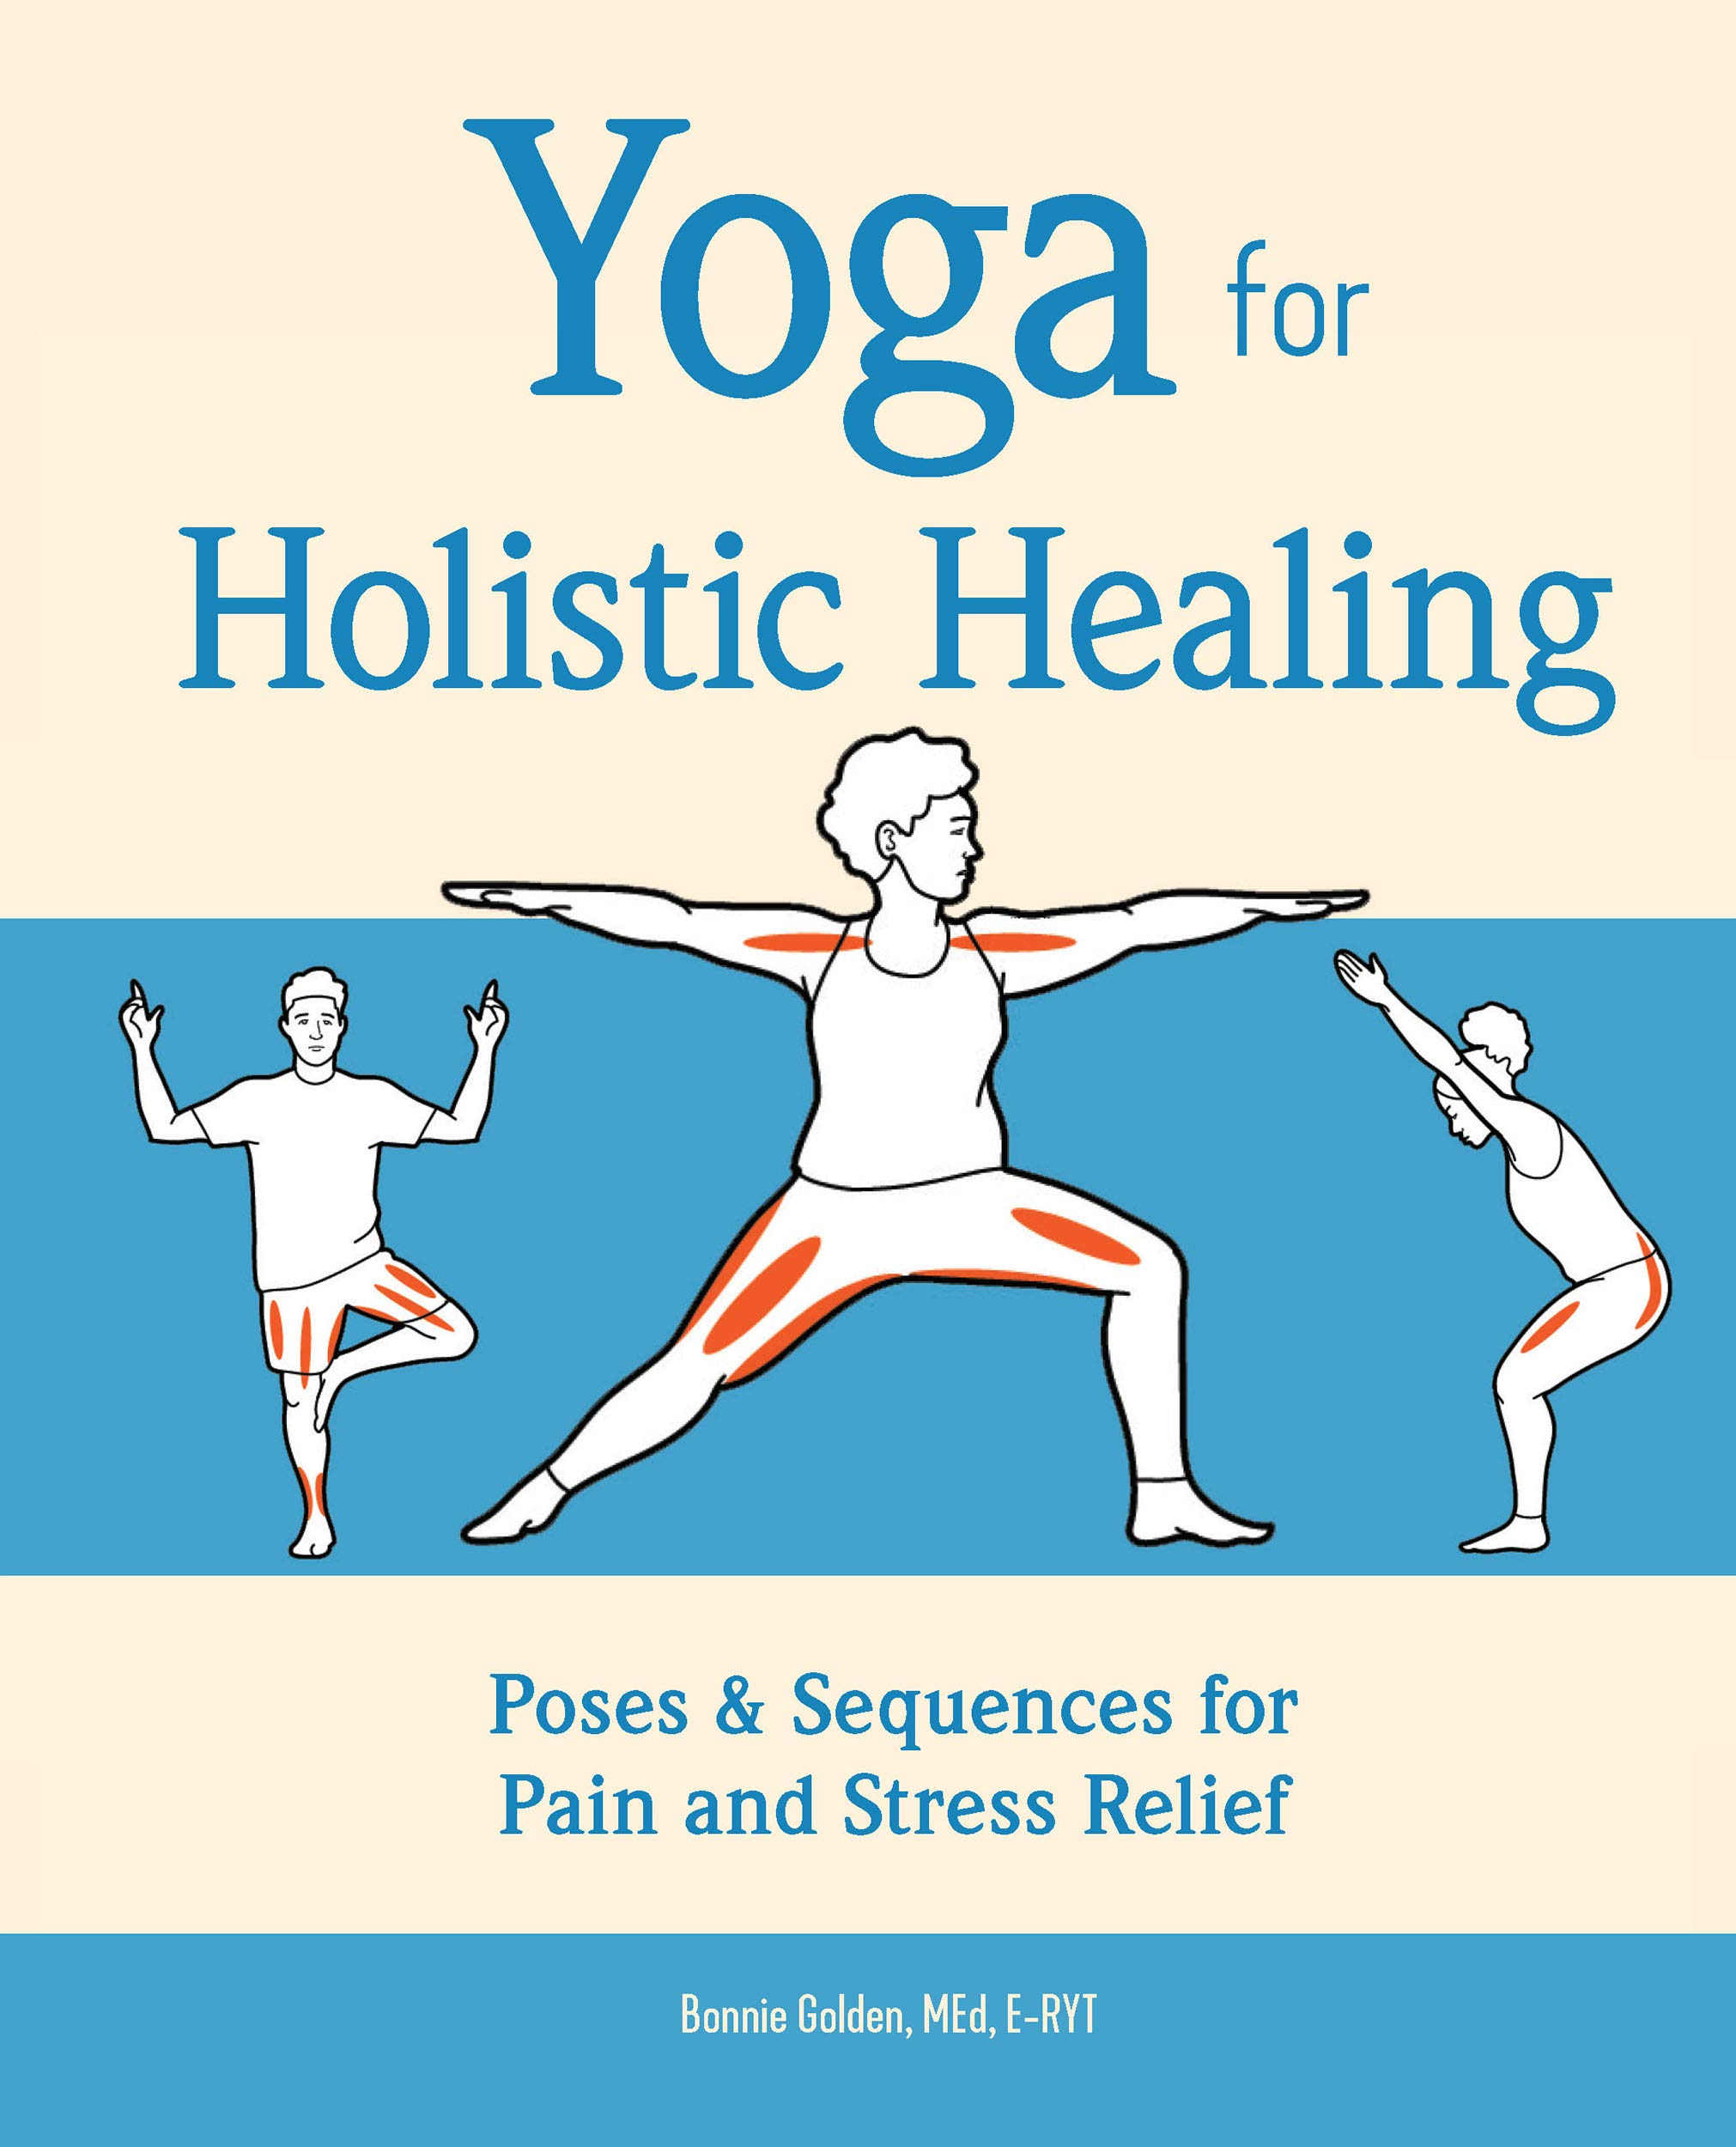 Yoga for Holistic Healing: Poses & Sequences for Pain and Stress